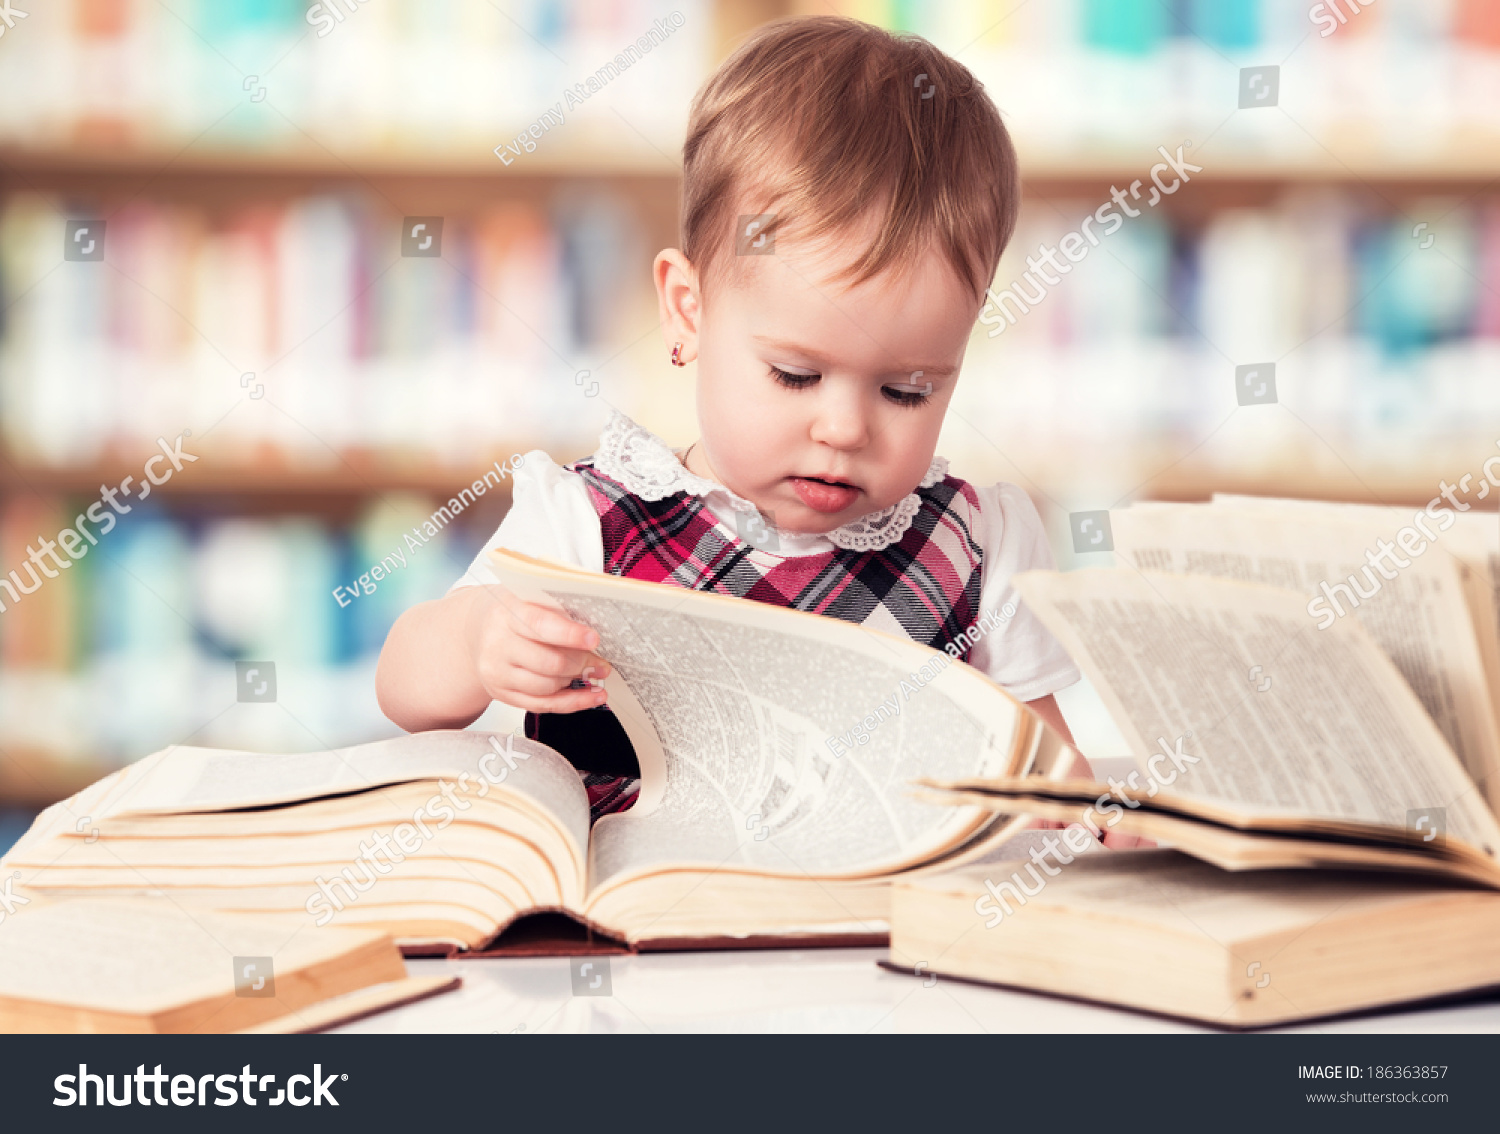 happy cute baby girl reading book stock photo (edit now)- shutterstock